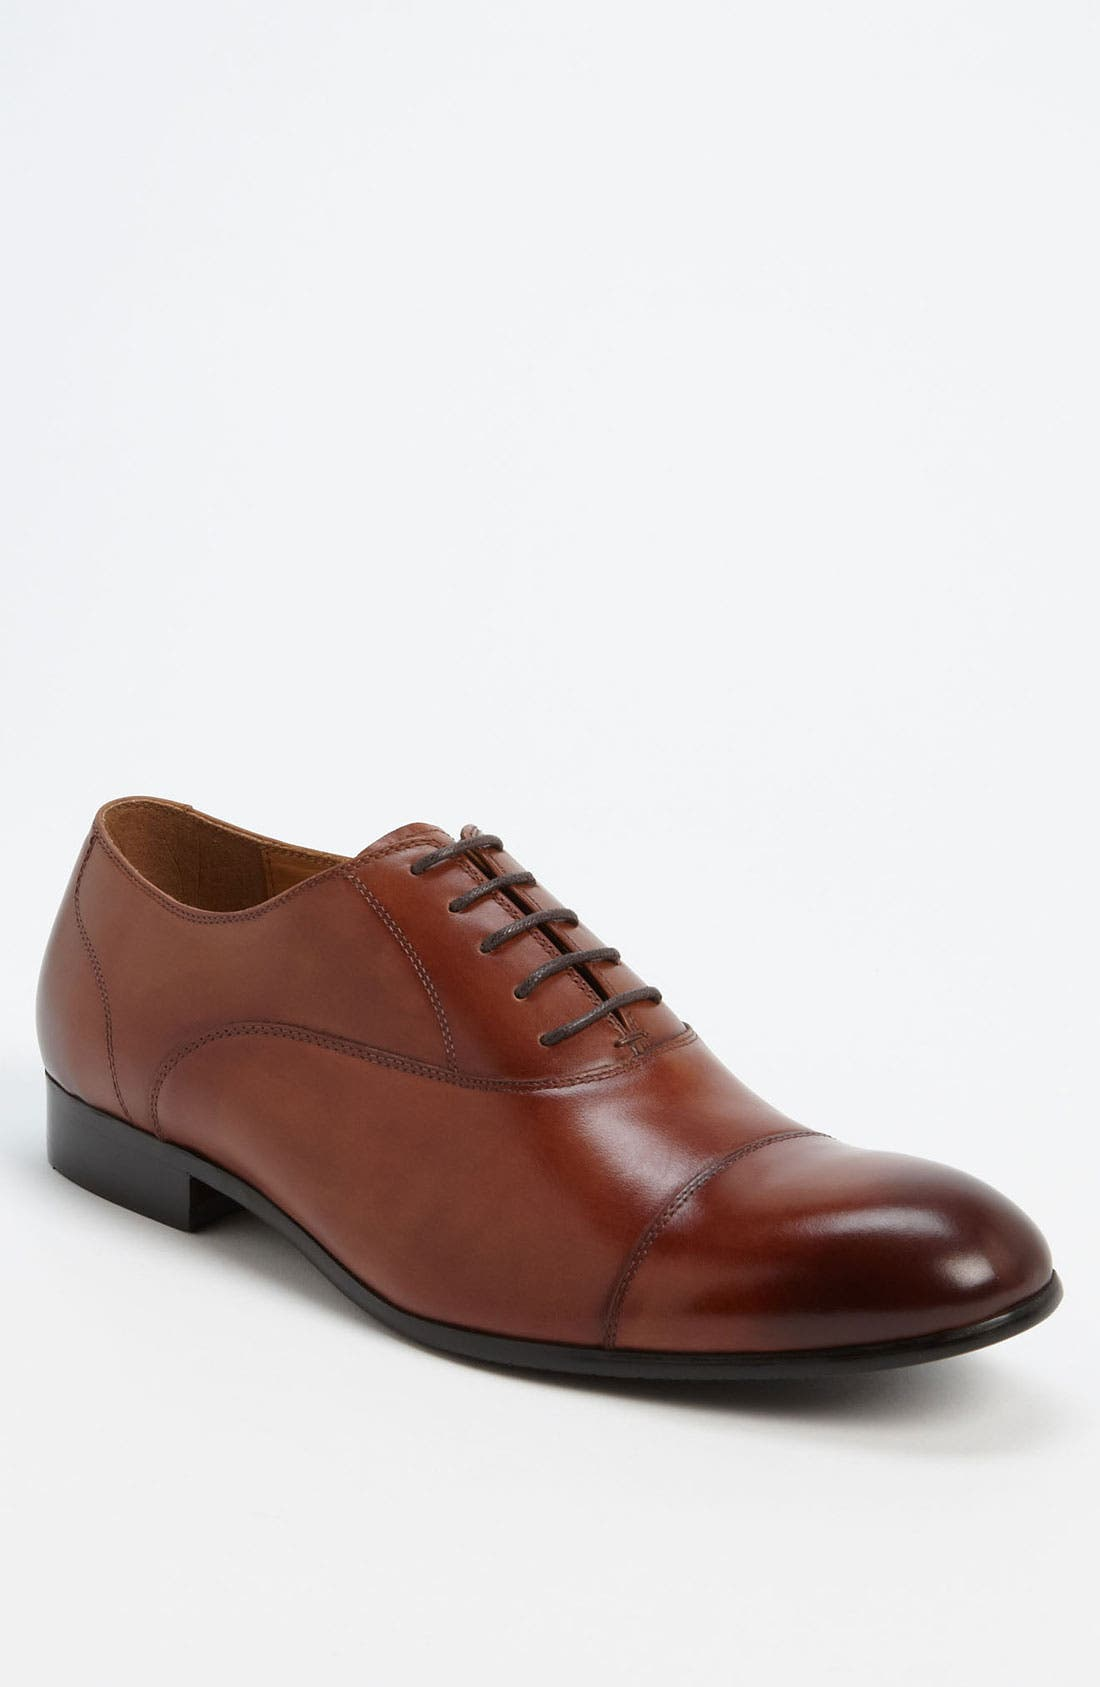 Alternate Image 1 Selected - ALDO 'Johniken' Cap Toe Oxford (Online Only)